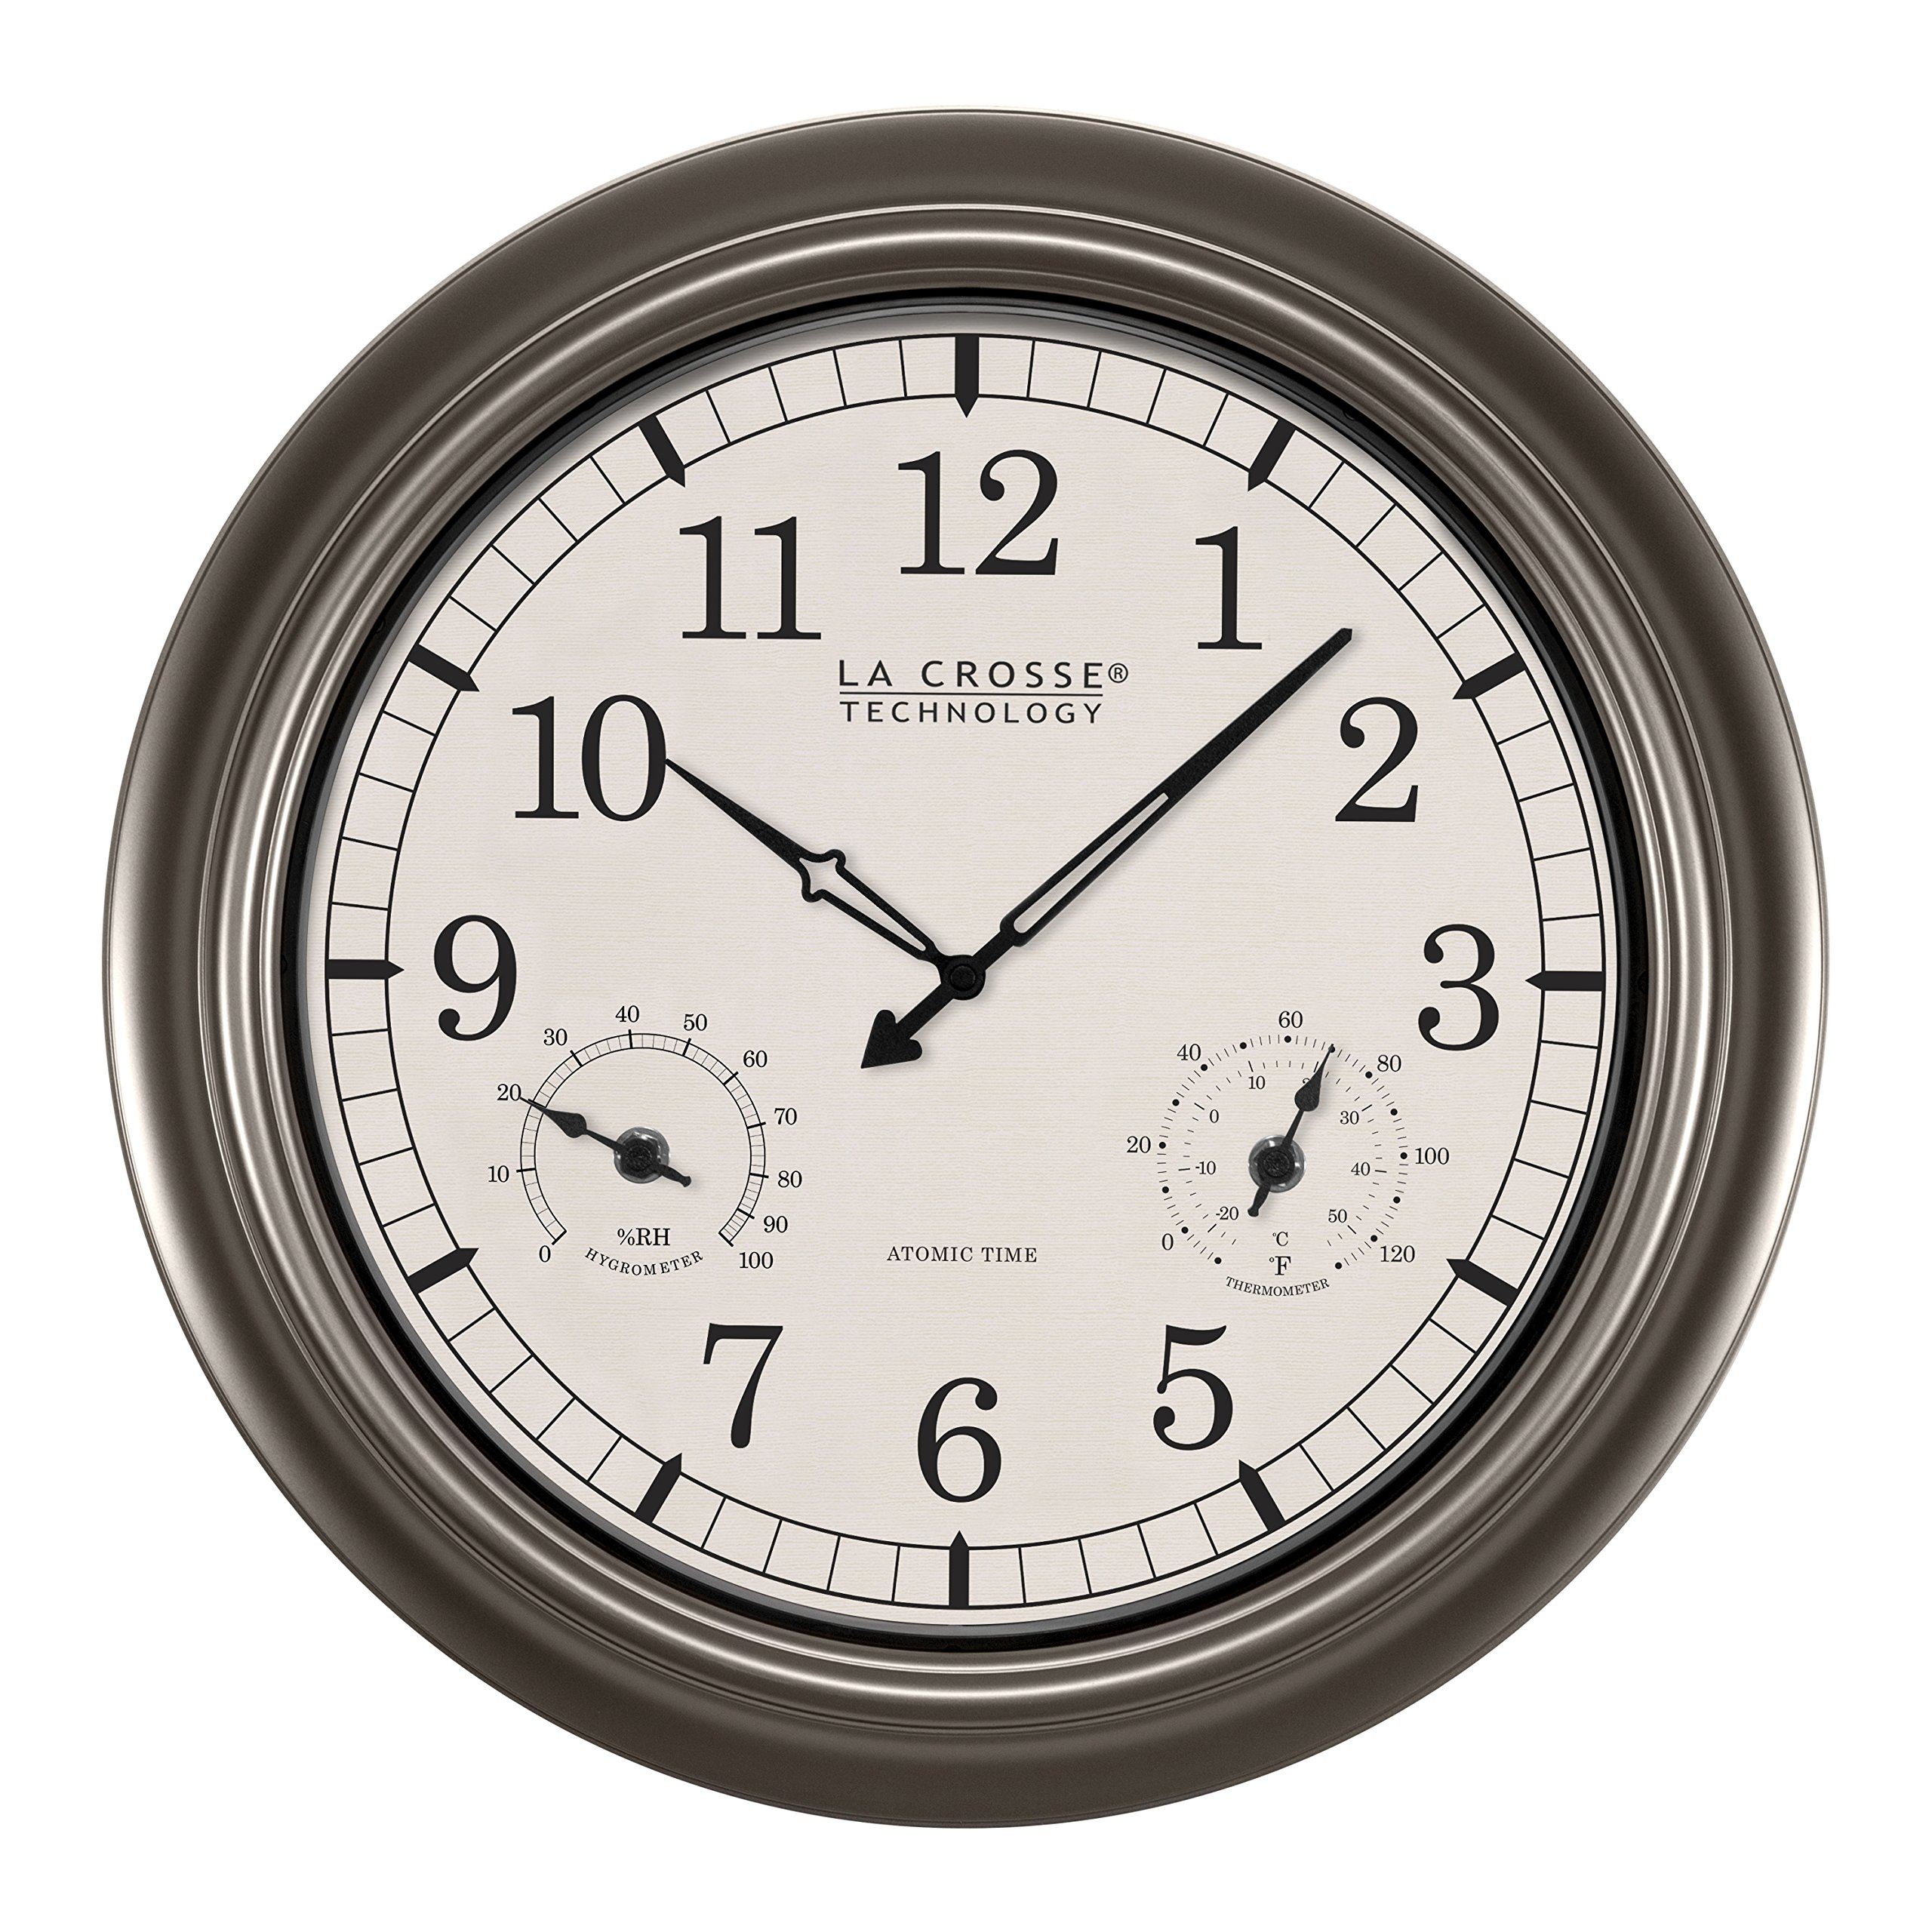 La Crosse Technology WT-3181PL-INT 18 inch Atomic Outdoor Clock with Temperature & Humidity by La Crosse Technology